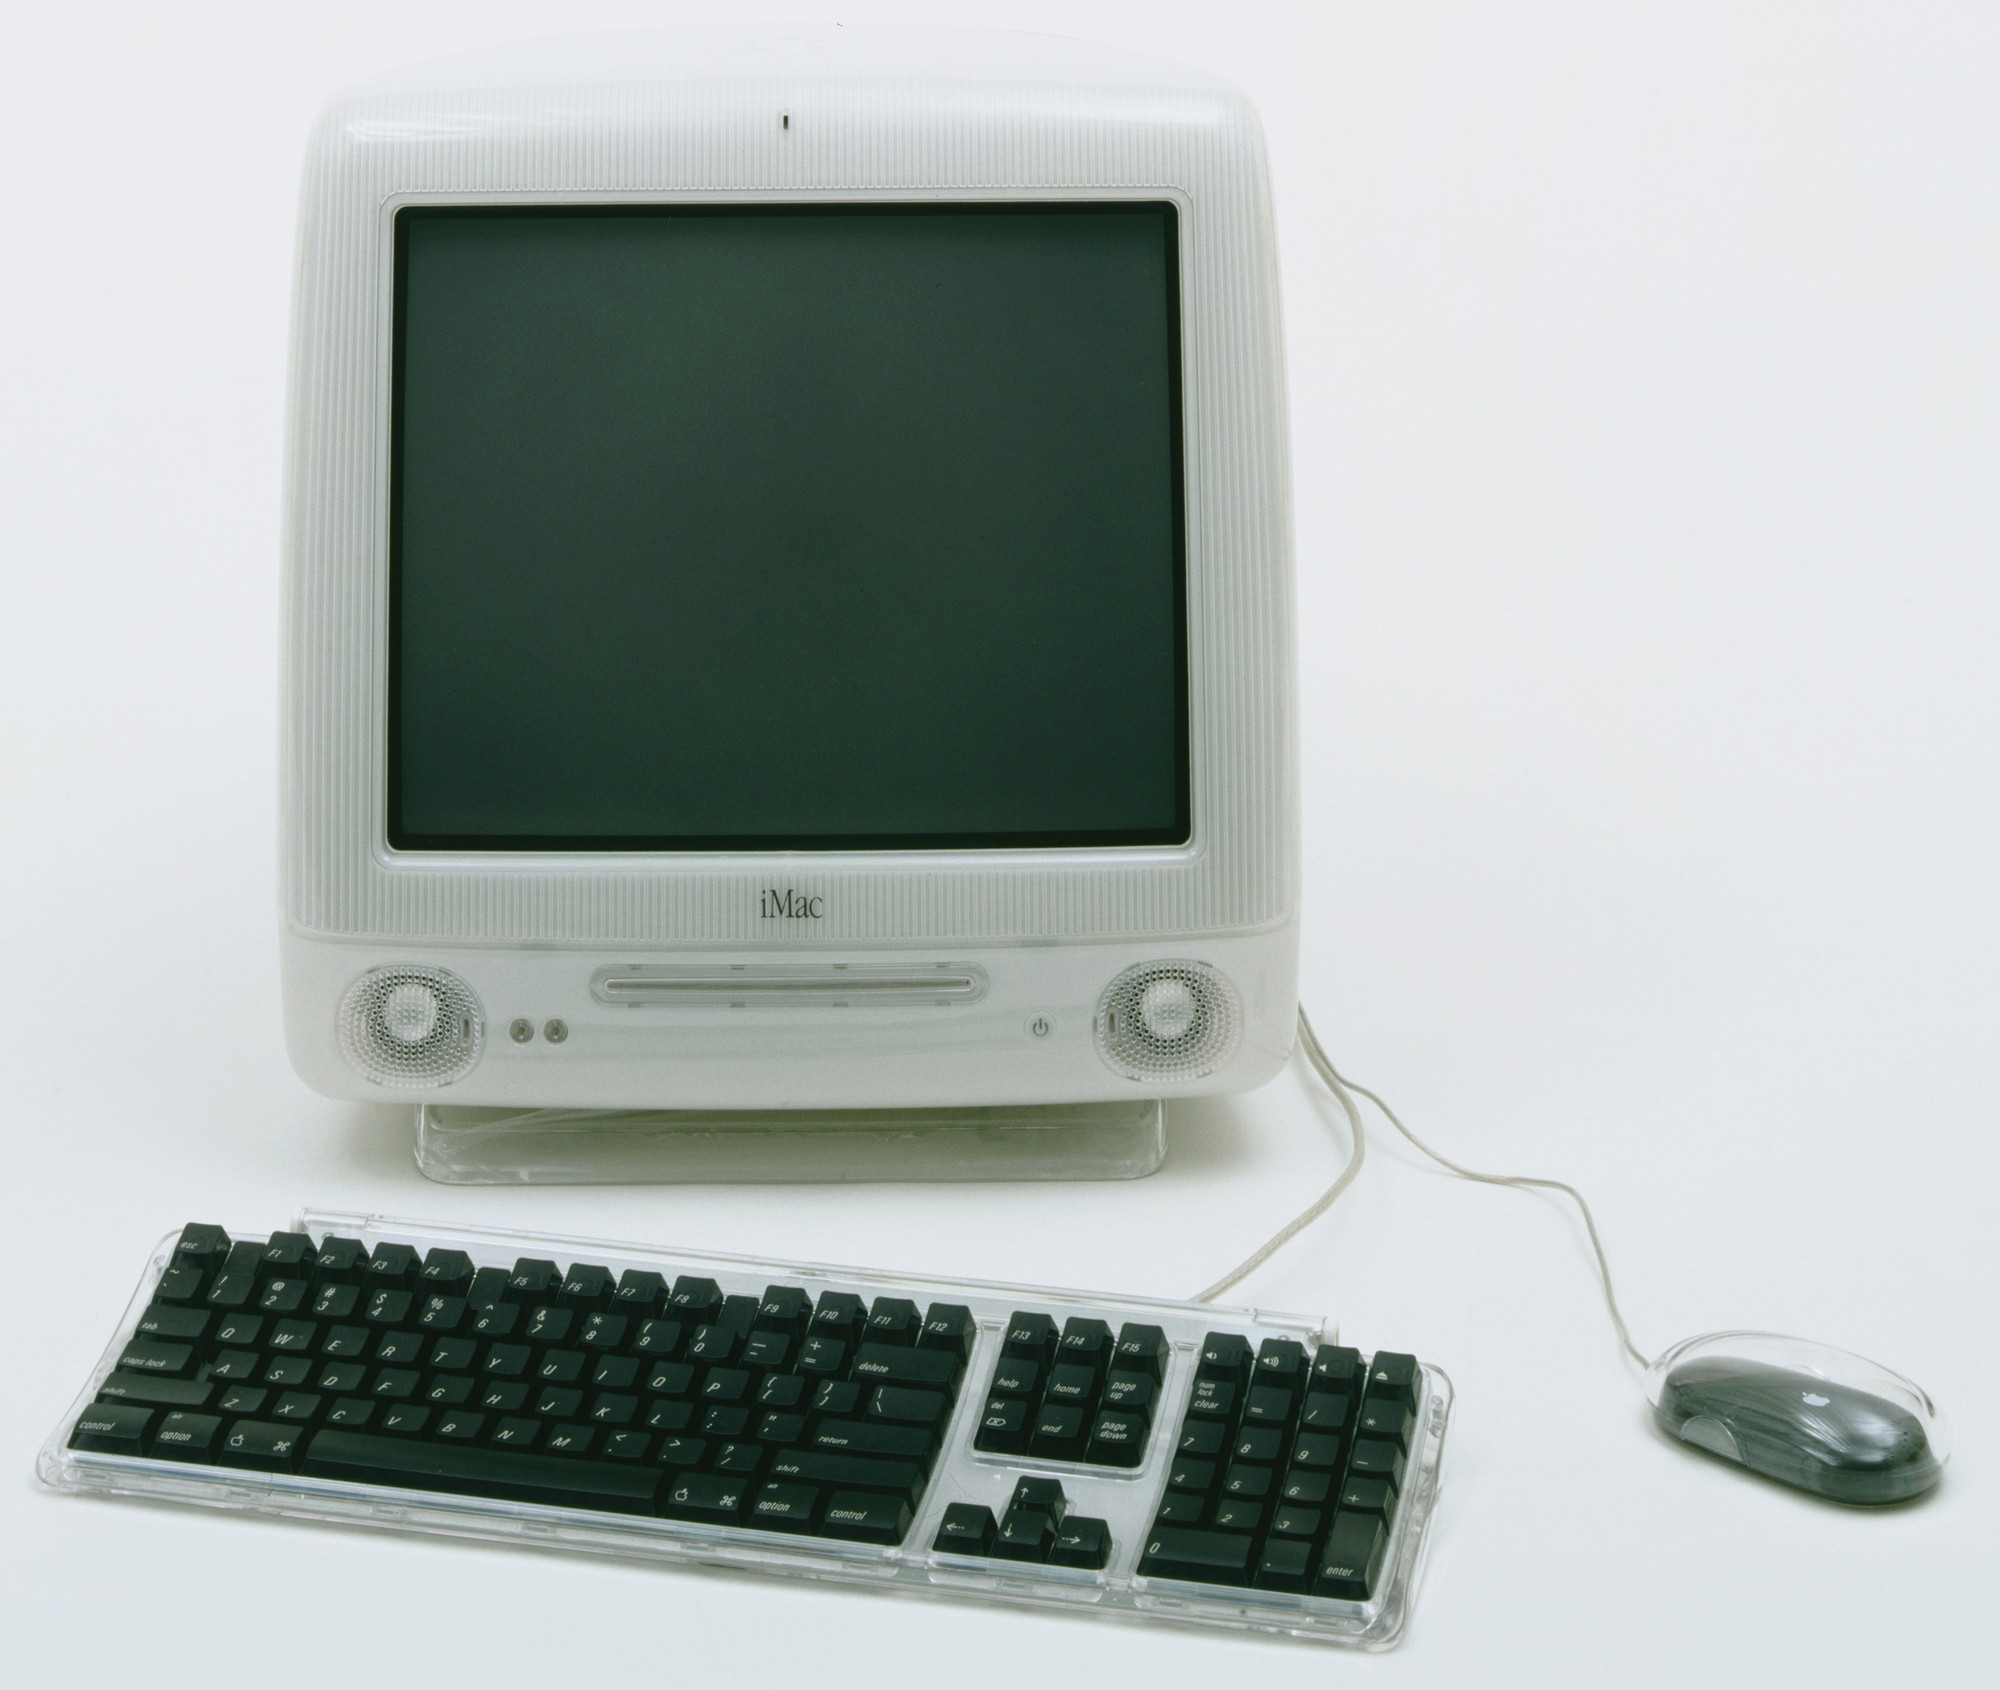 Apple Industrial Design Group. iMac Desktop Computer. 1998